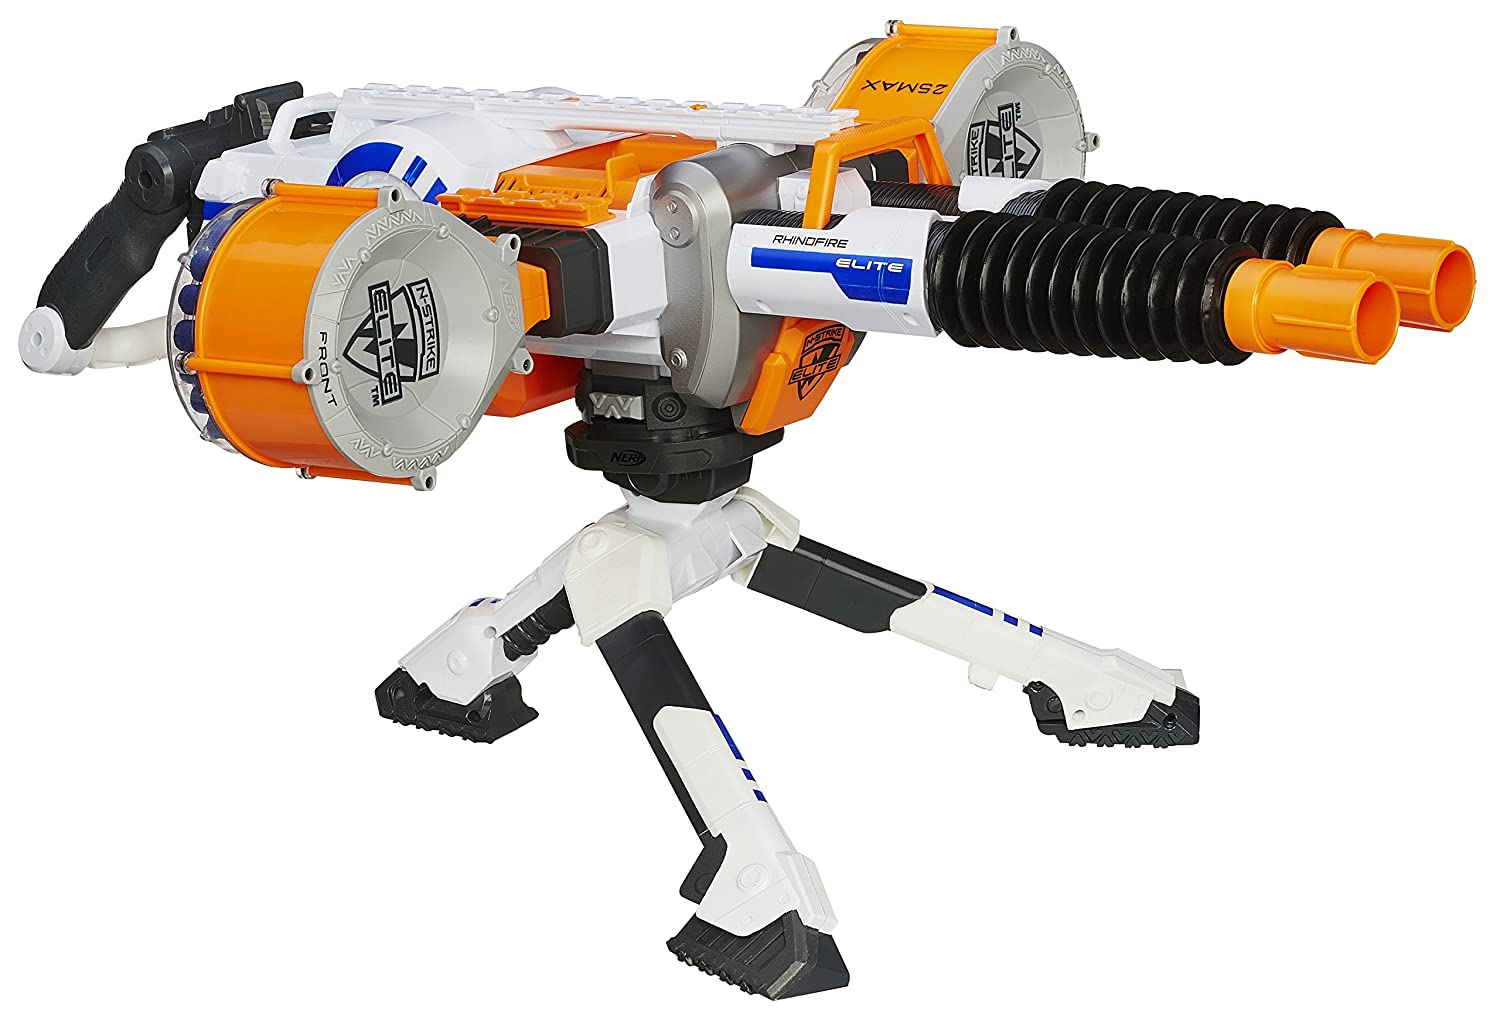 Hasbro 34276EU5 Nerf - N-Strike Elite Rhino-fire: Amazon.co.uk: Toys & Games